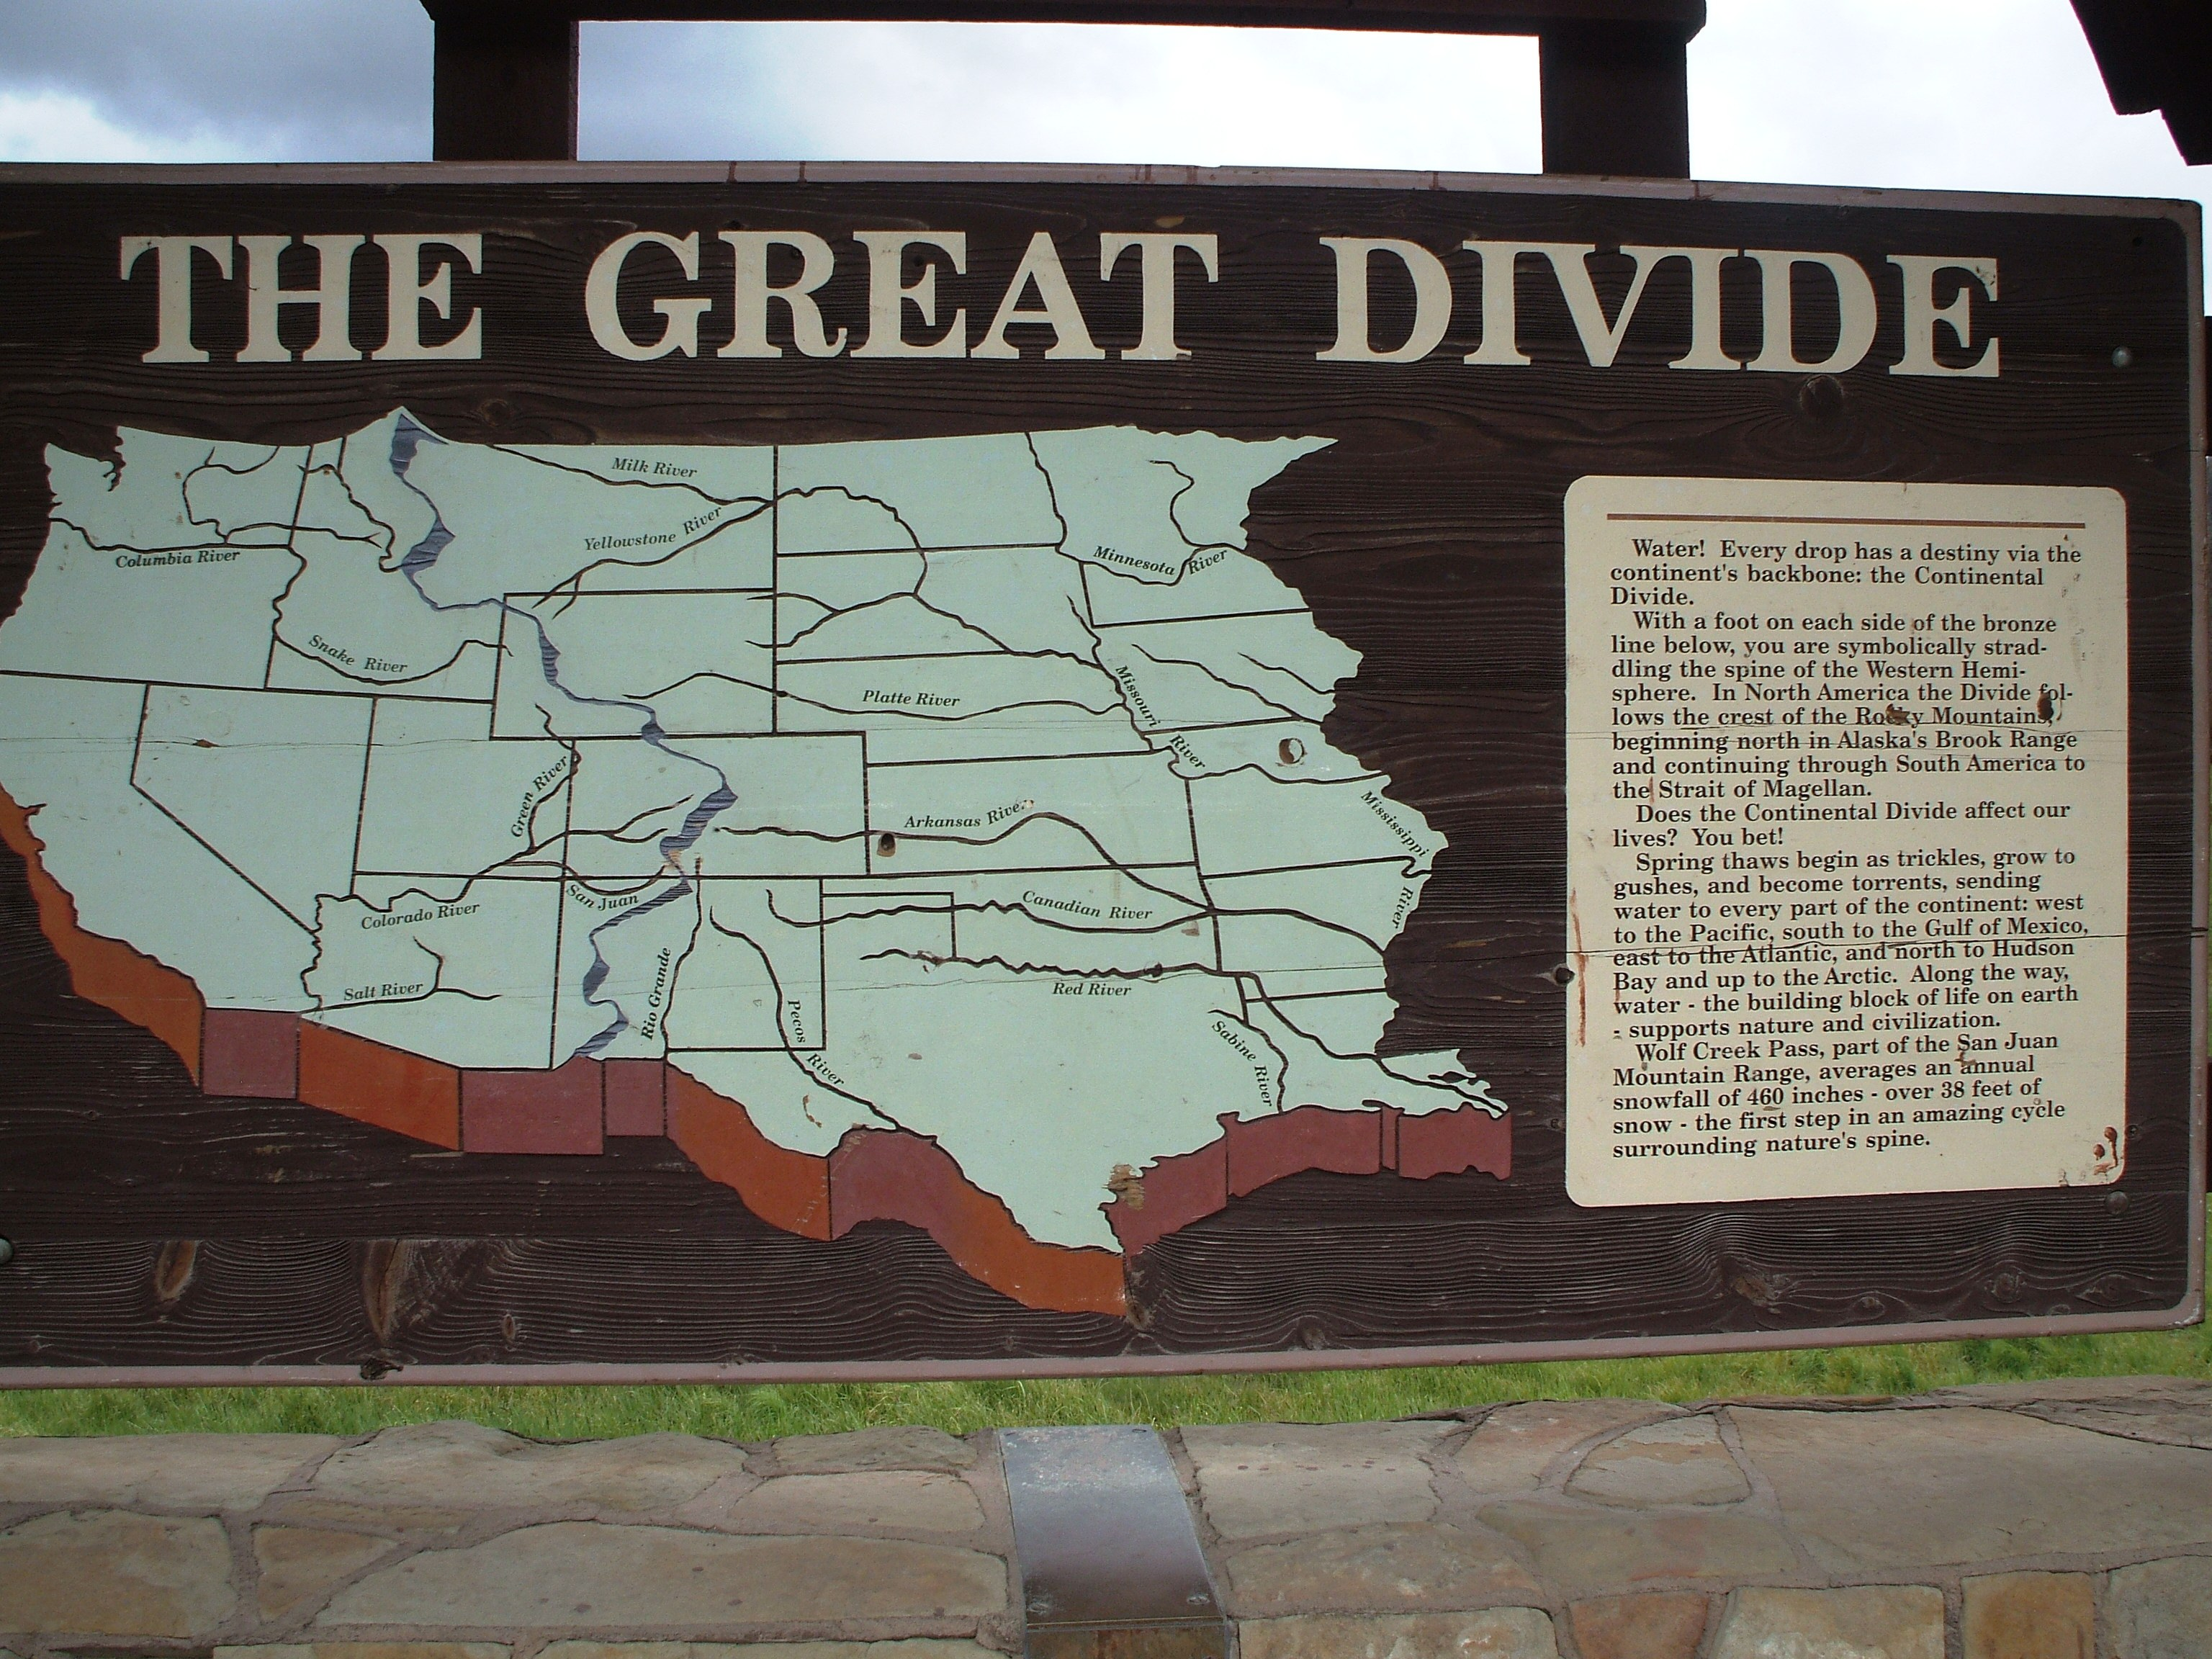 Crossing the Great Divide